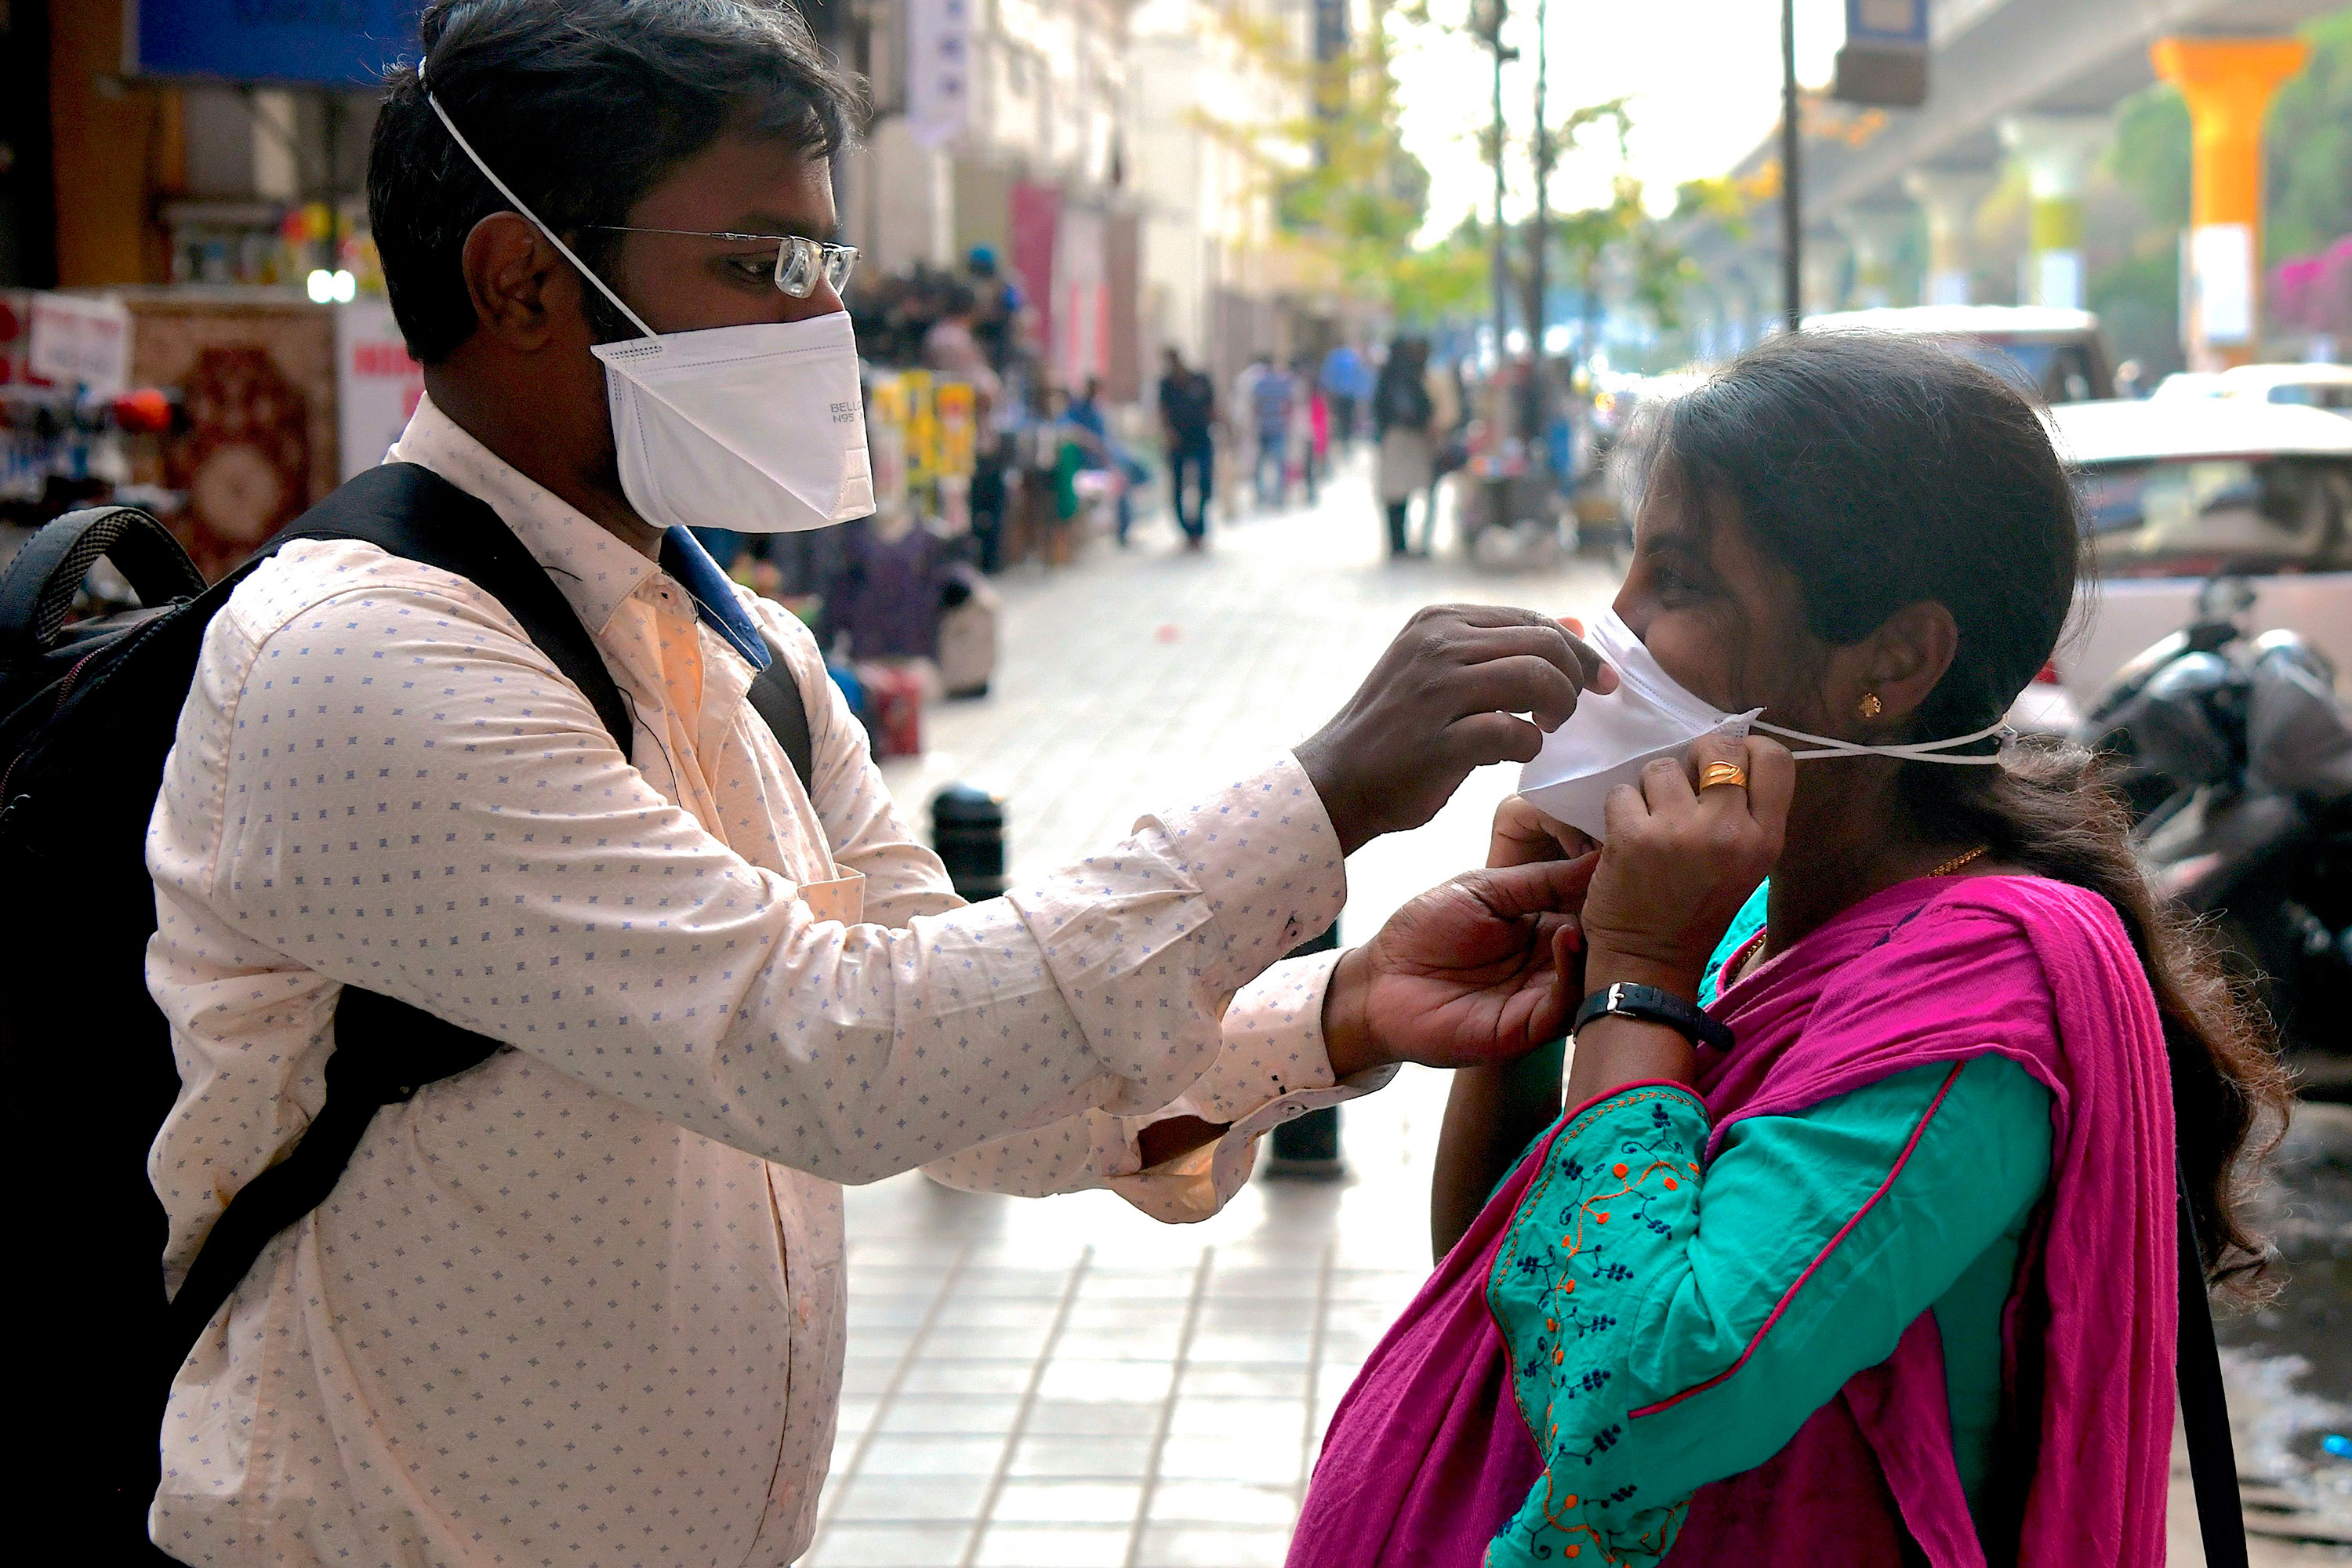 A man helps a woman put on a face mask outside of a metro station in Bangalore, India on March 5.